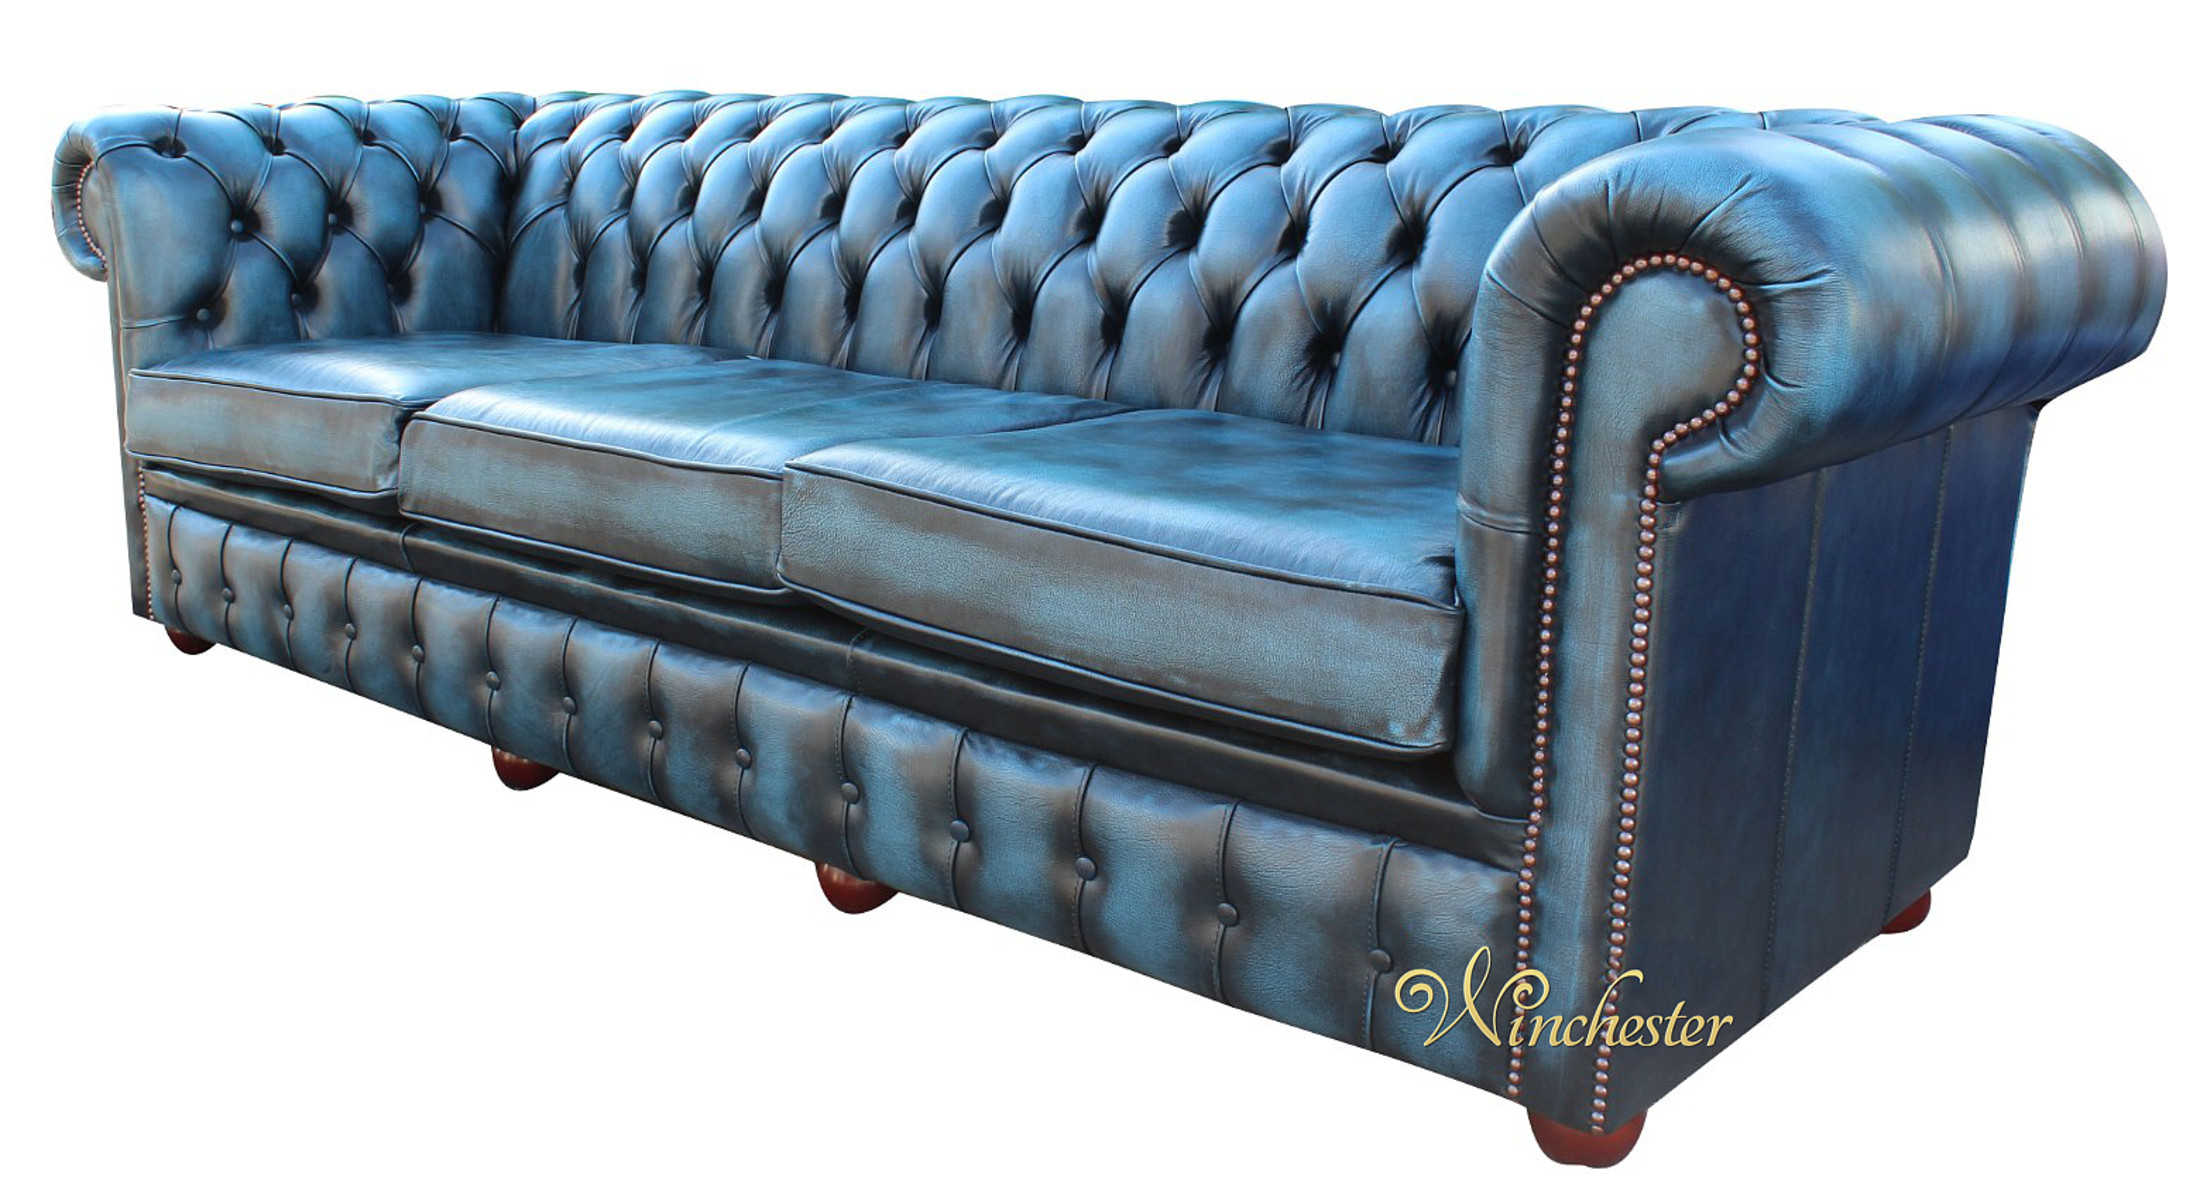 Chesterfield 4 Seater Antique Blue Leather Wc